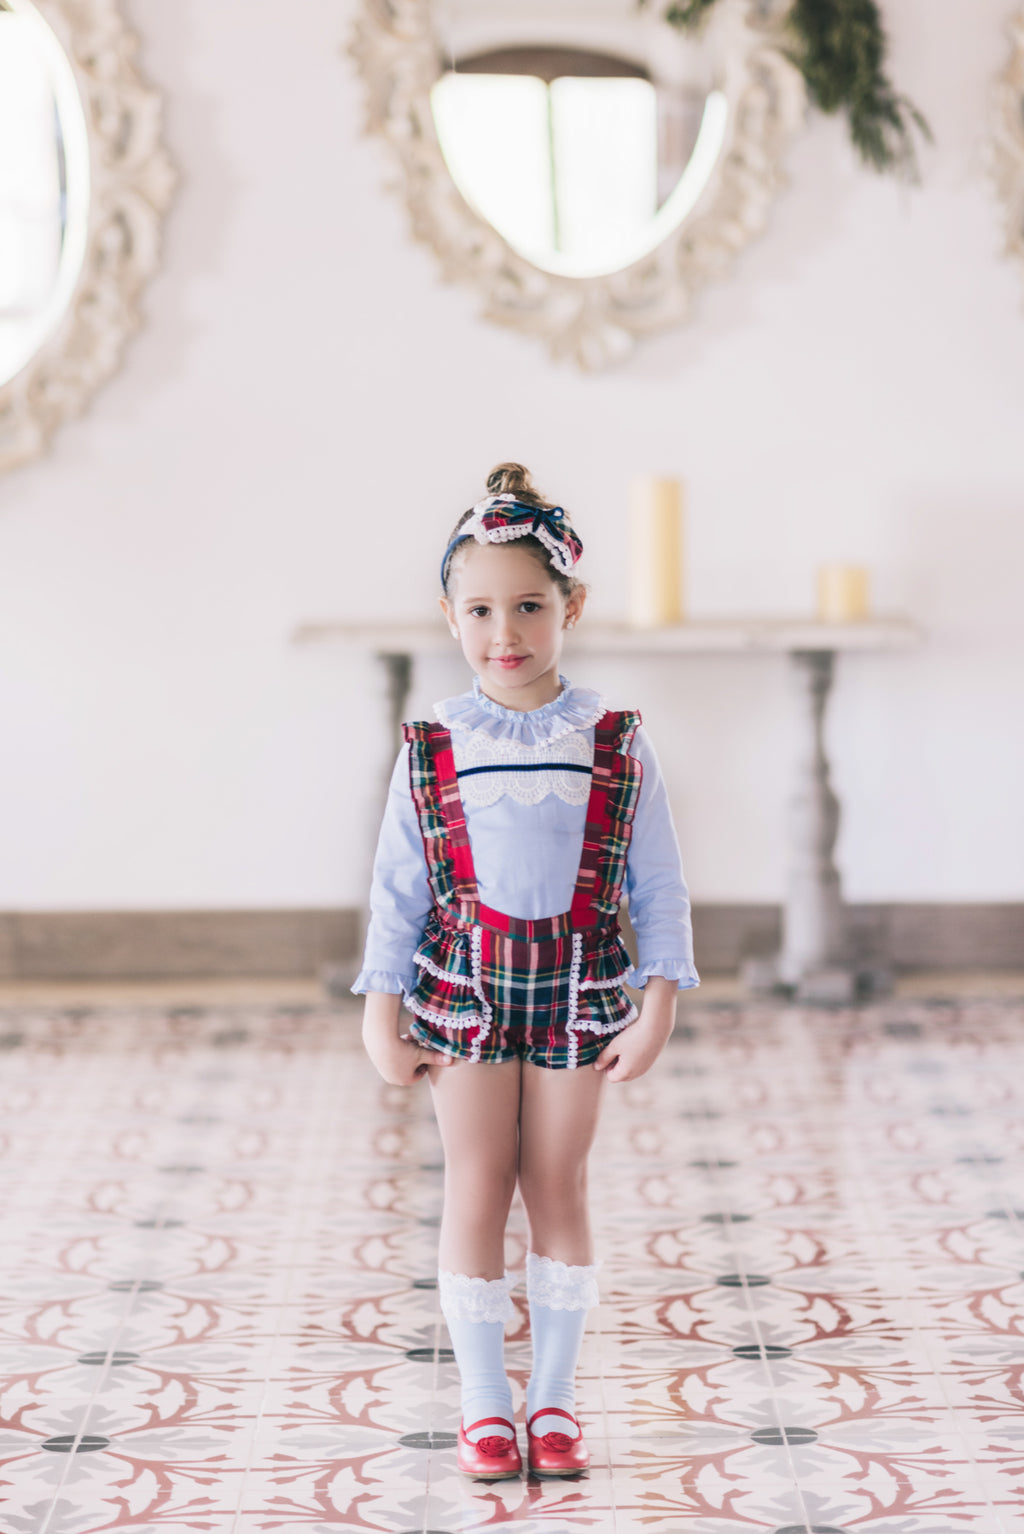 AW17 Dolce Petit Girls Tartan Braces Shorts Set 2257-2/3 - Liquorice Kids